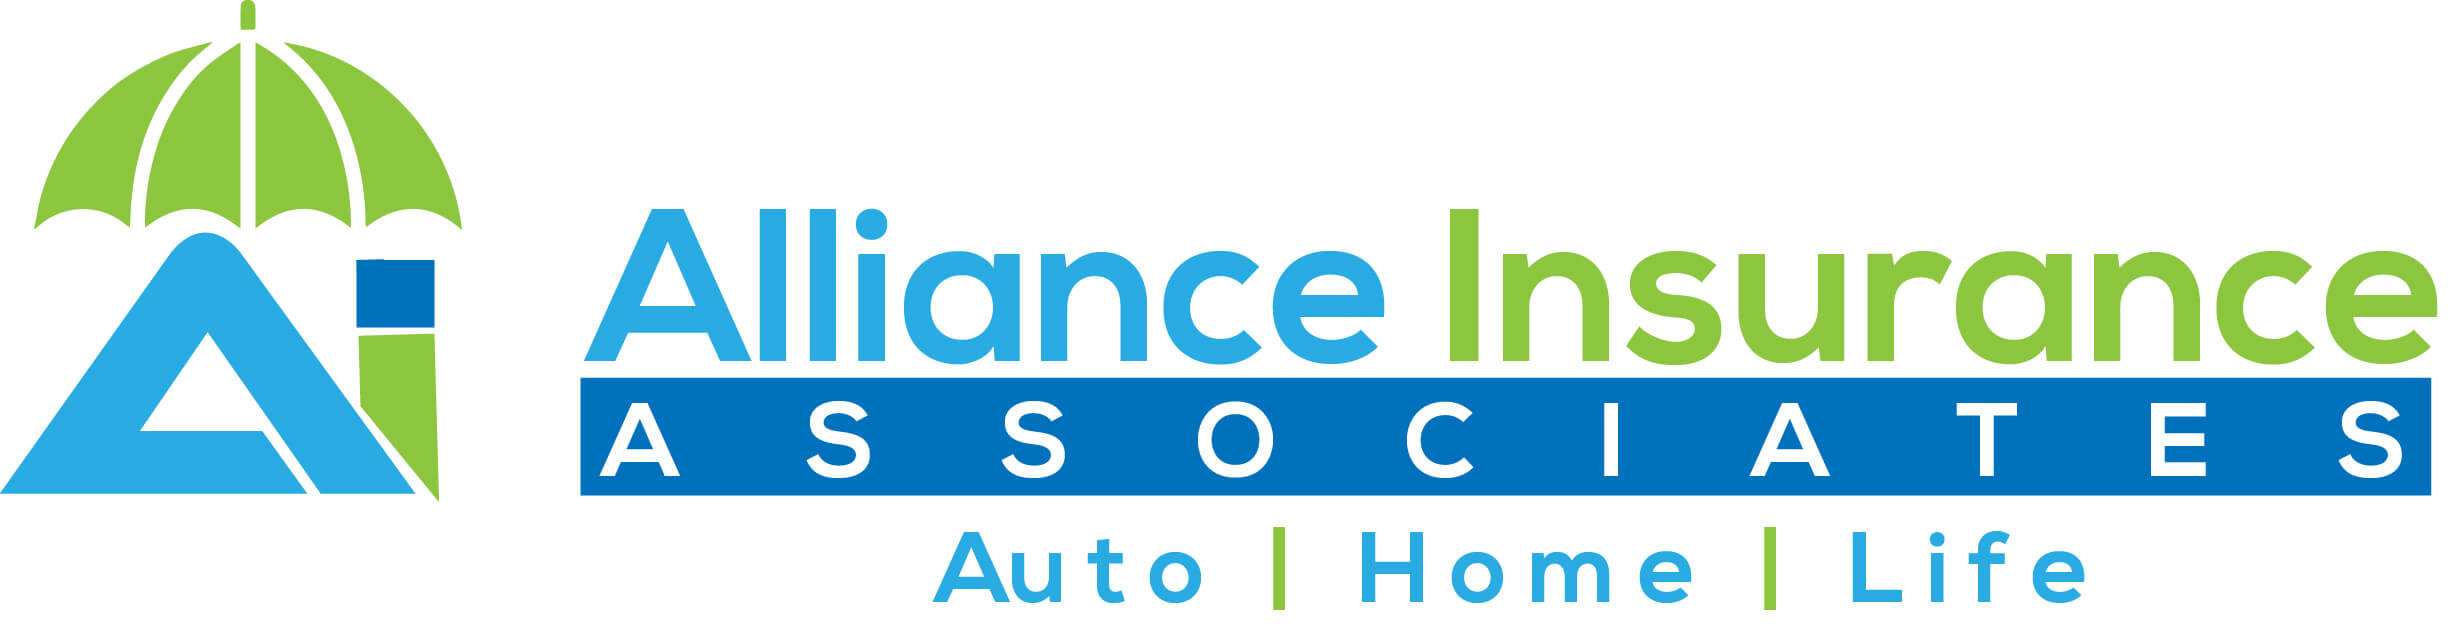 alliance-insurance-logo